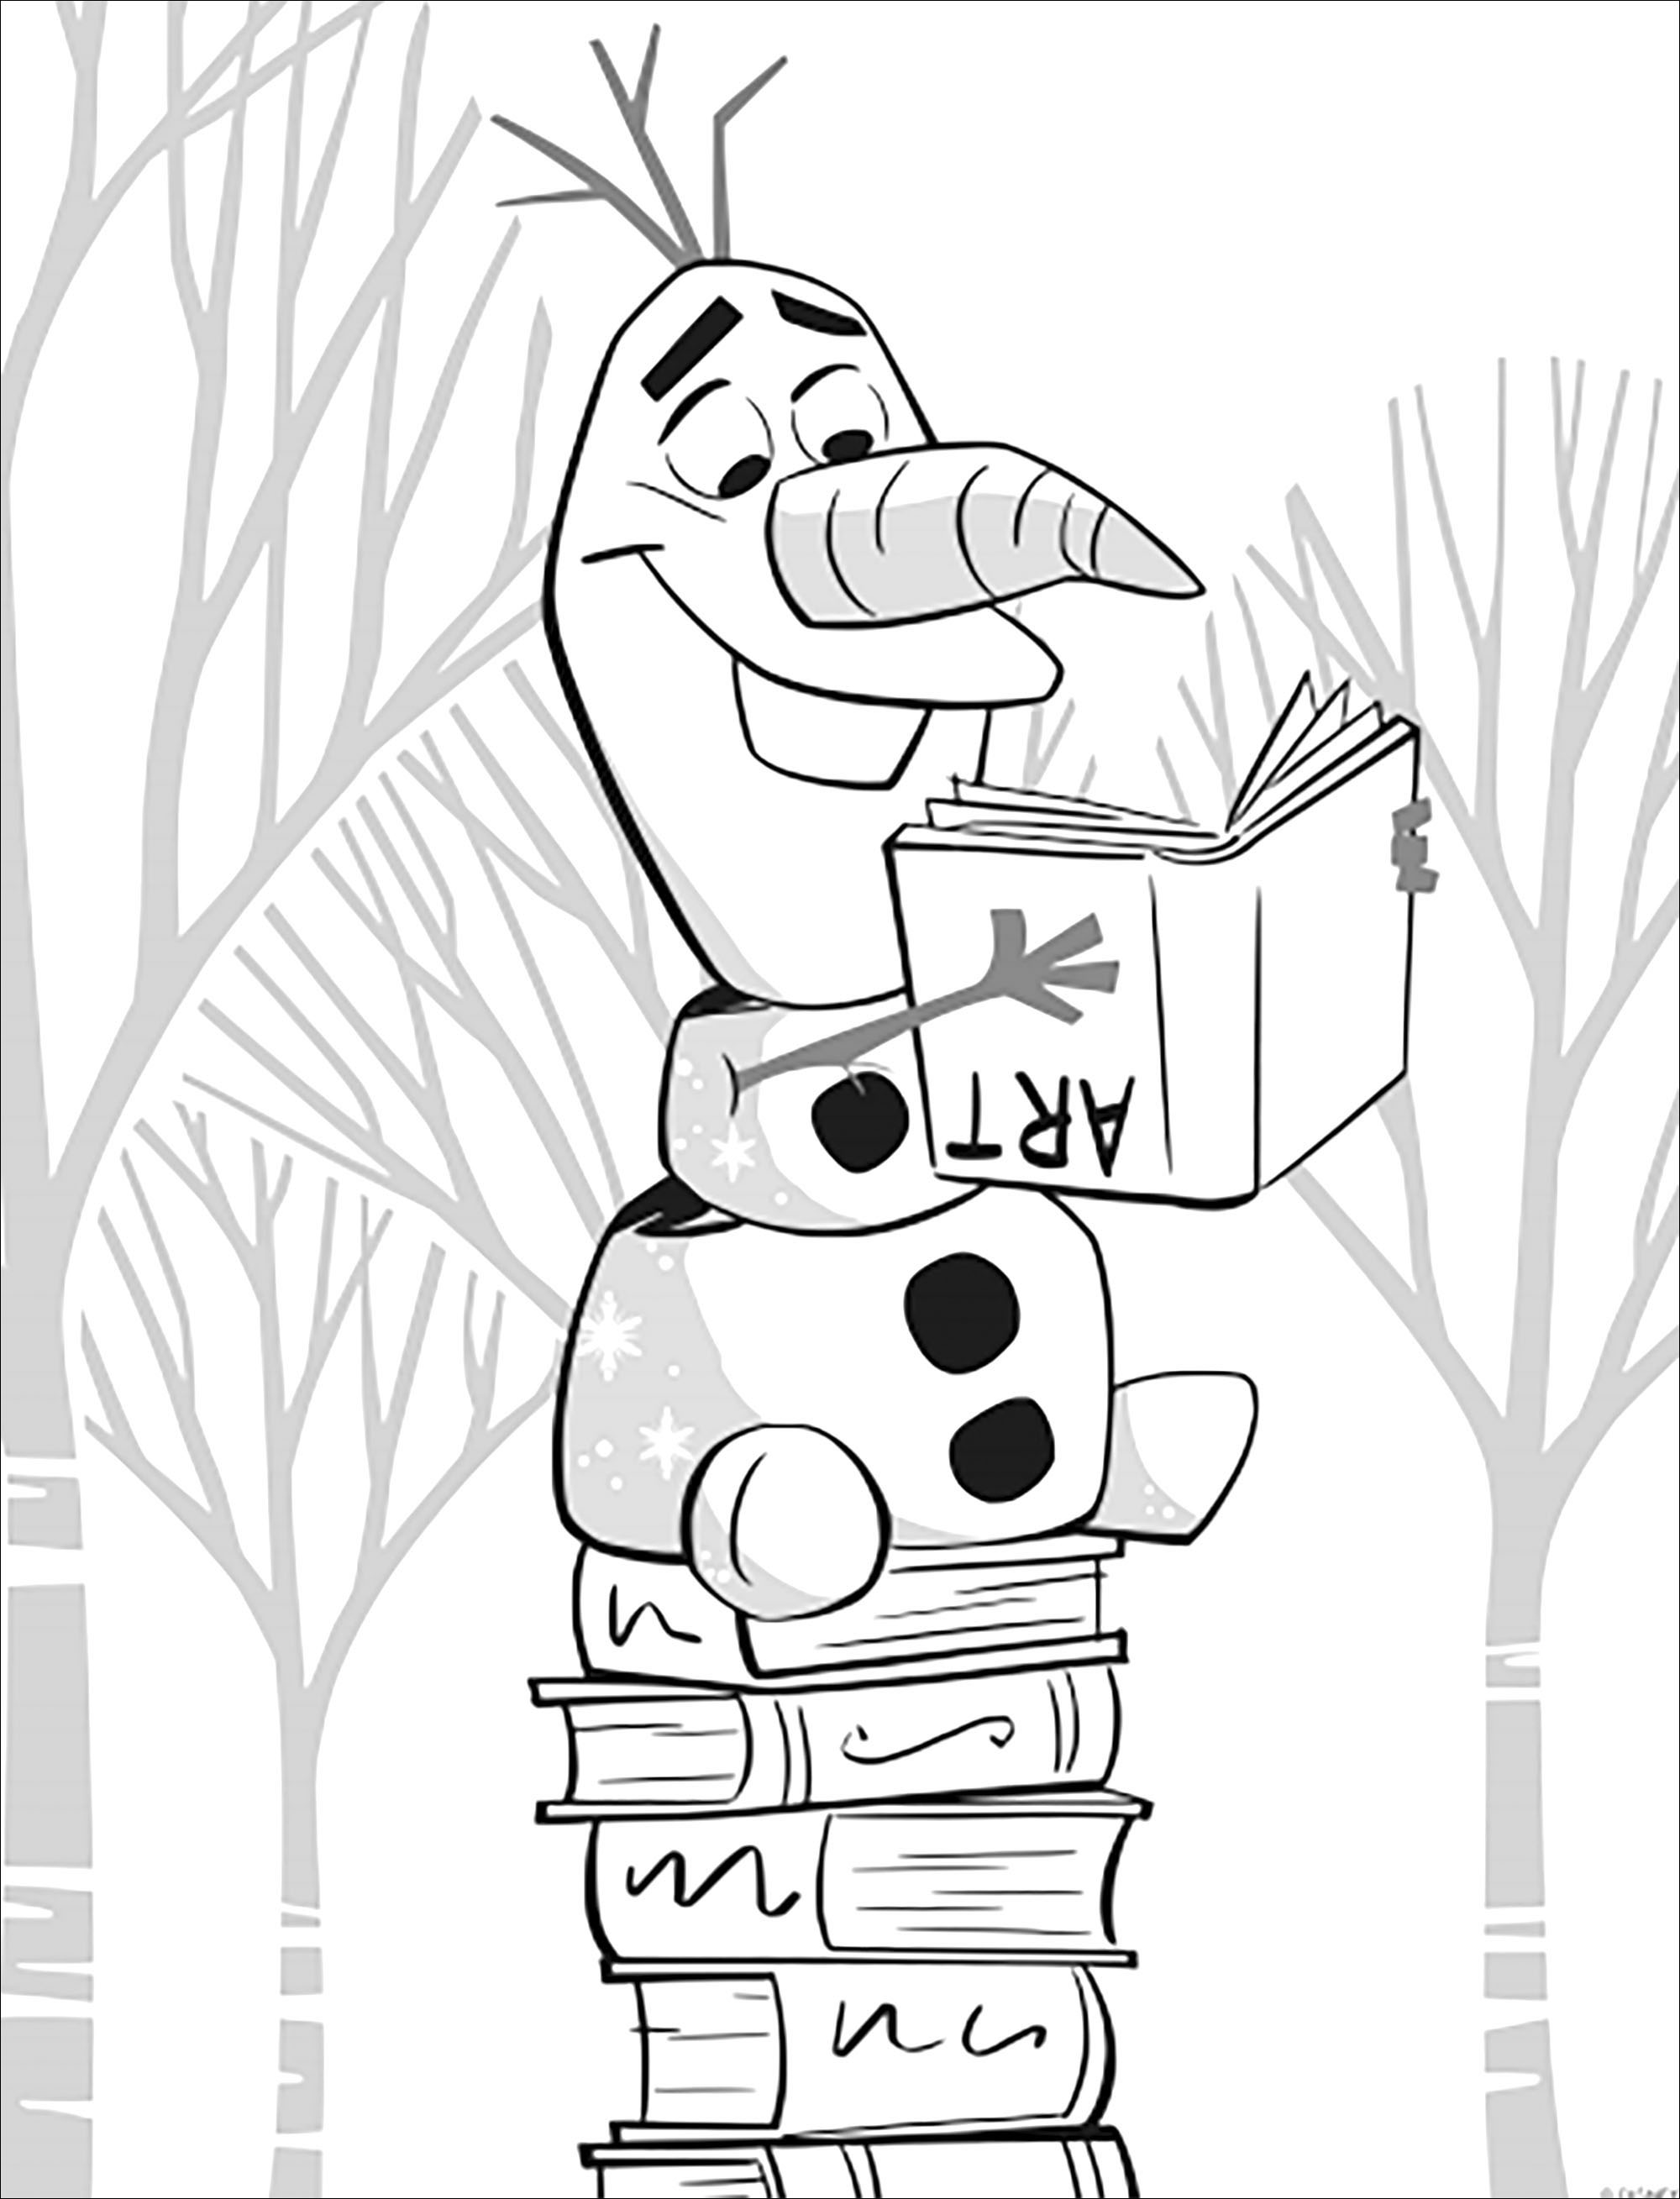 Frozen 2 Olaf Without Text